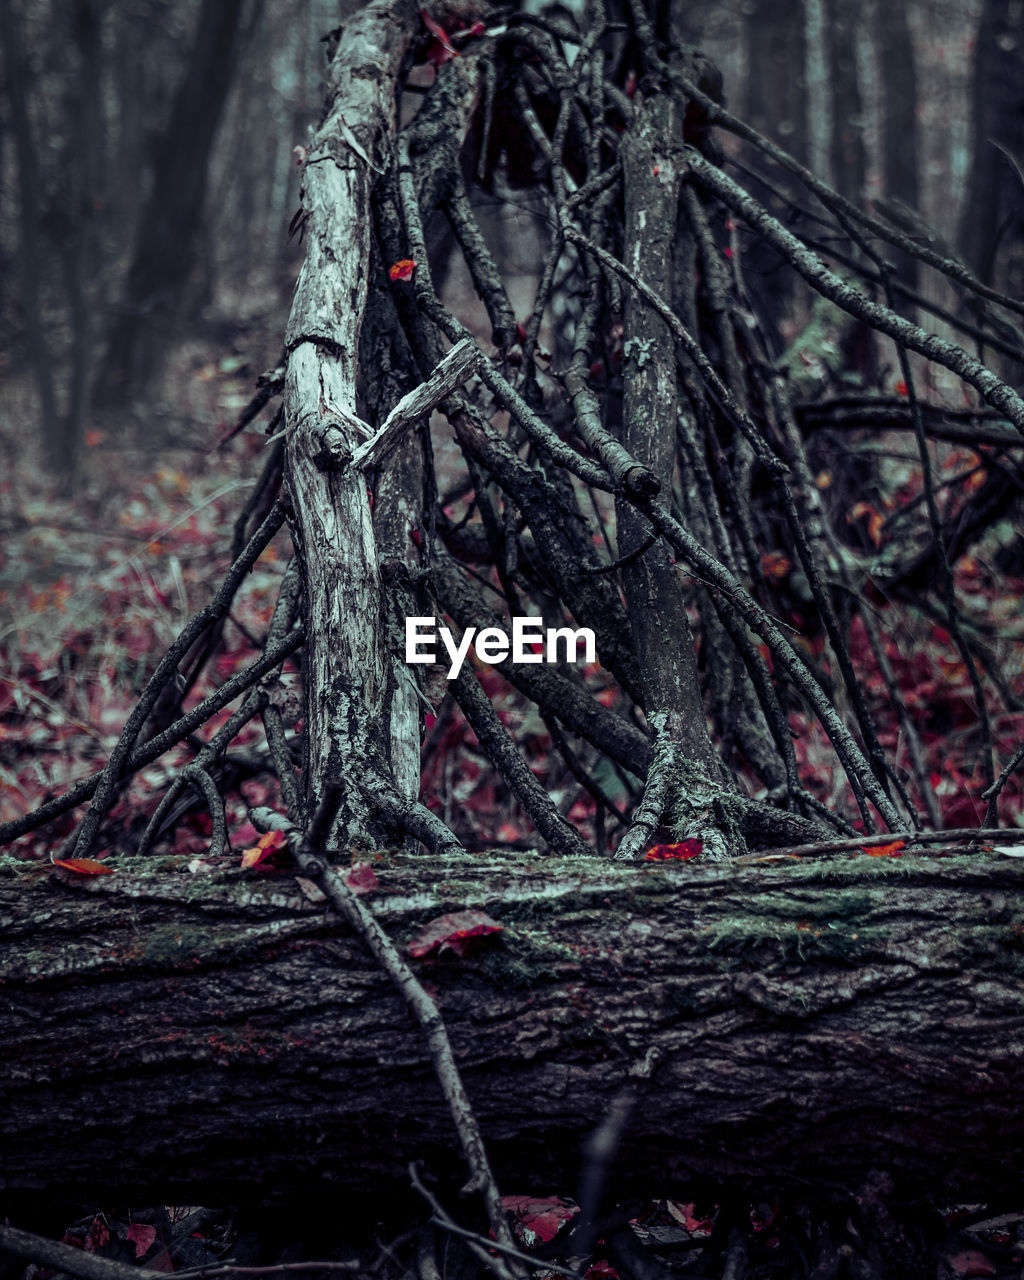 tree, plant, forest, land, nature, no people, day, branch, trunk, tree trunk, woodland, focus on foreground, tranquility, growth, outdoors, beauty in nature, selective focus, close-up, moss, plant part, tangled